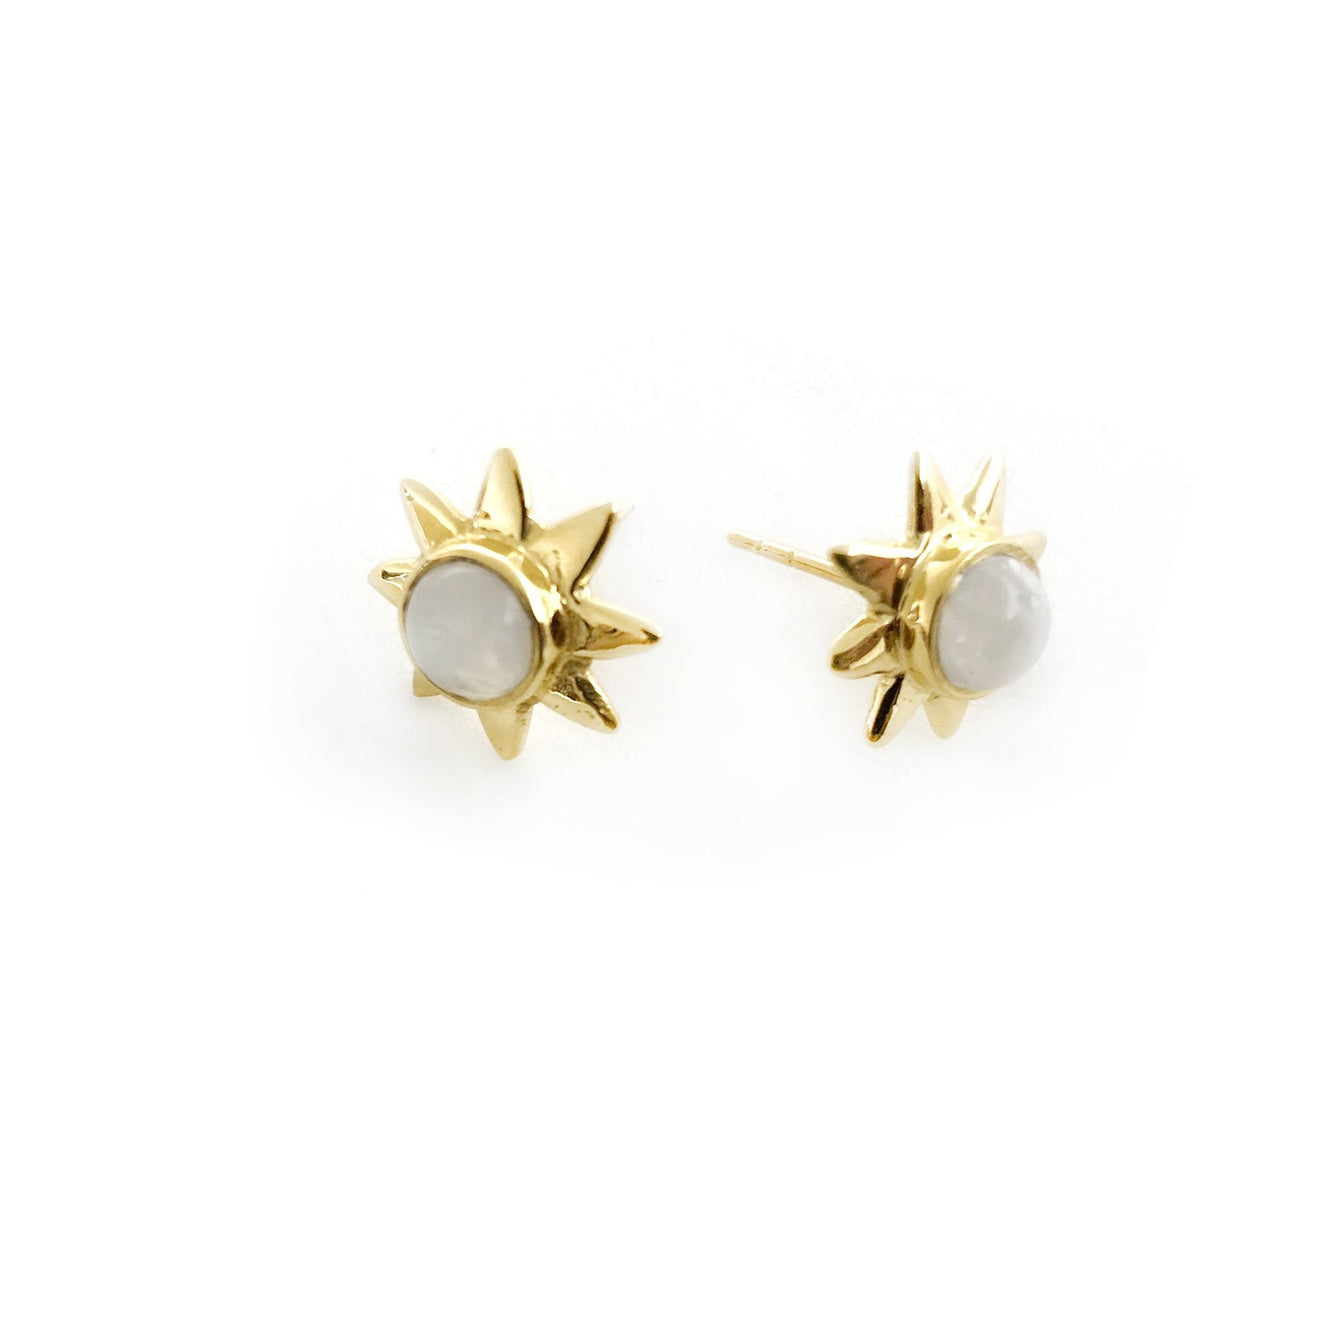 Starr 24k Gold Studs Genuine Gemstone Earrings-Women - Jewelry - Earrings-ADDISON WEEKS-Moonstone-Peccadilly